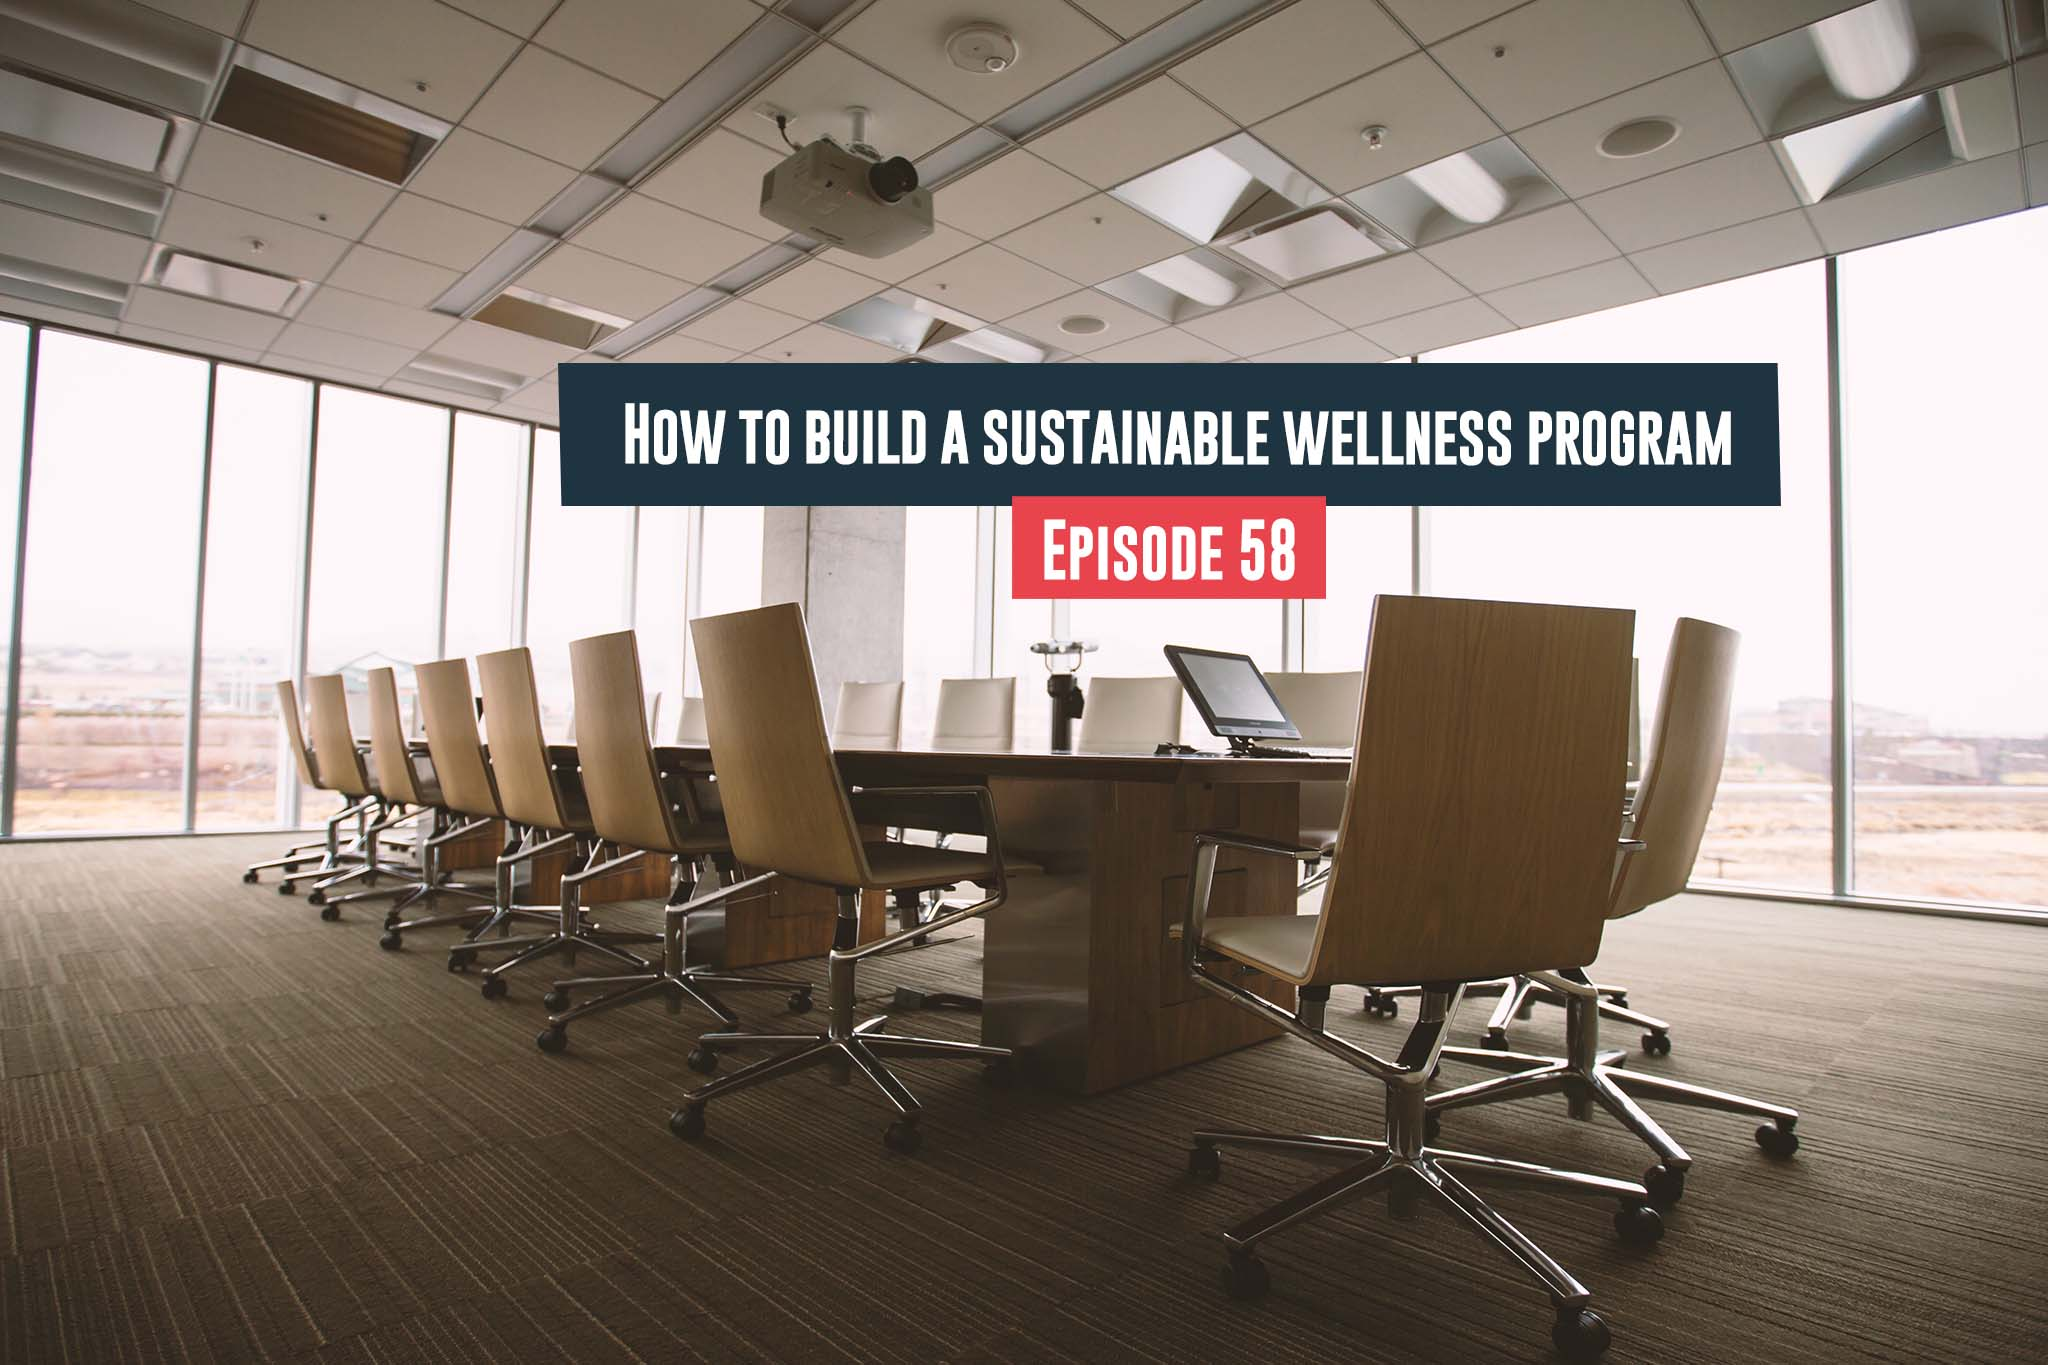 Build a Sustainable Wellness Program